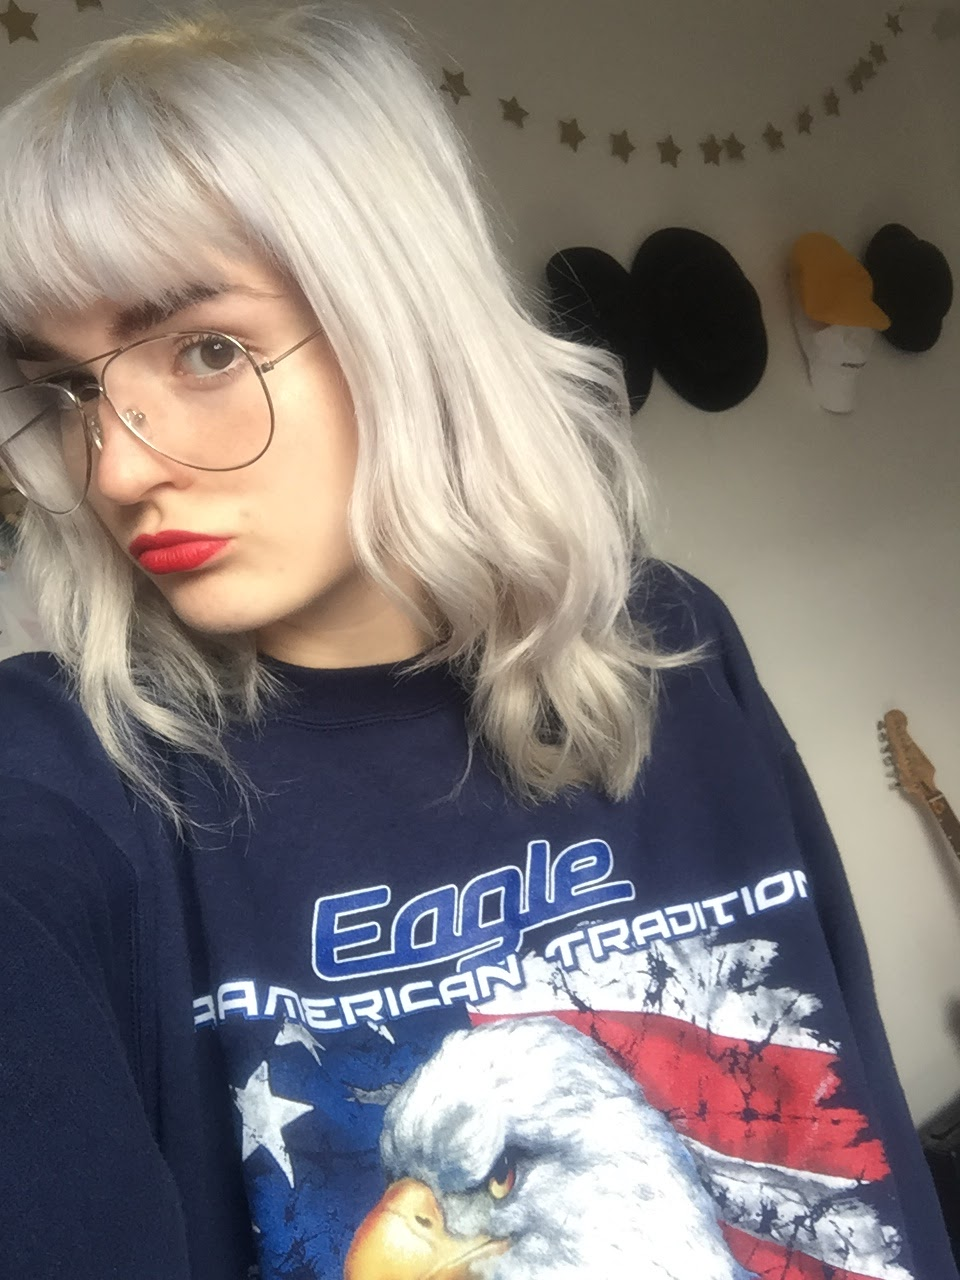 silver haired girl wearing vintage jumper, red lipstick and aviator glasses